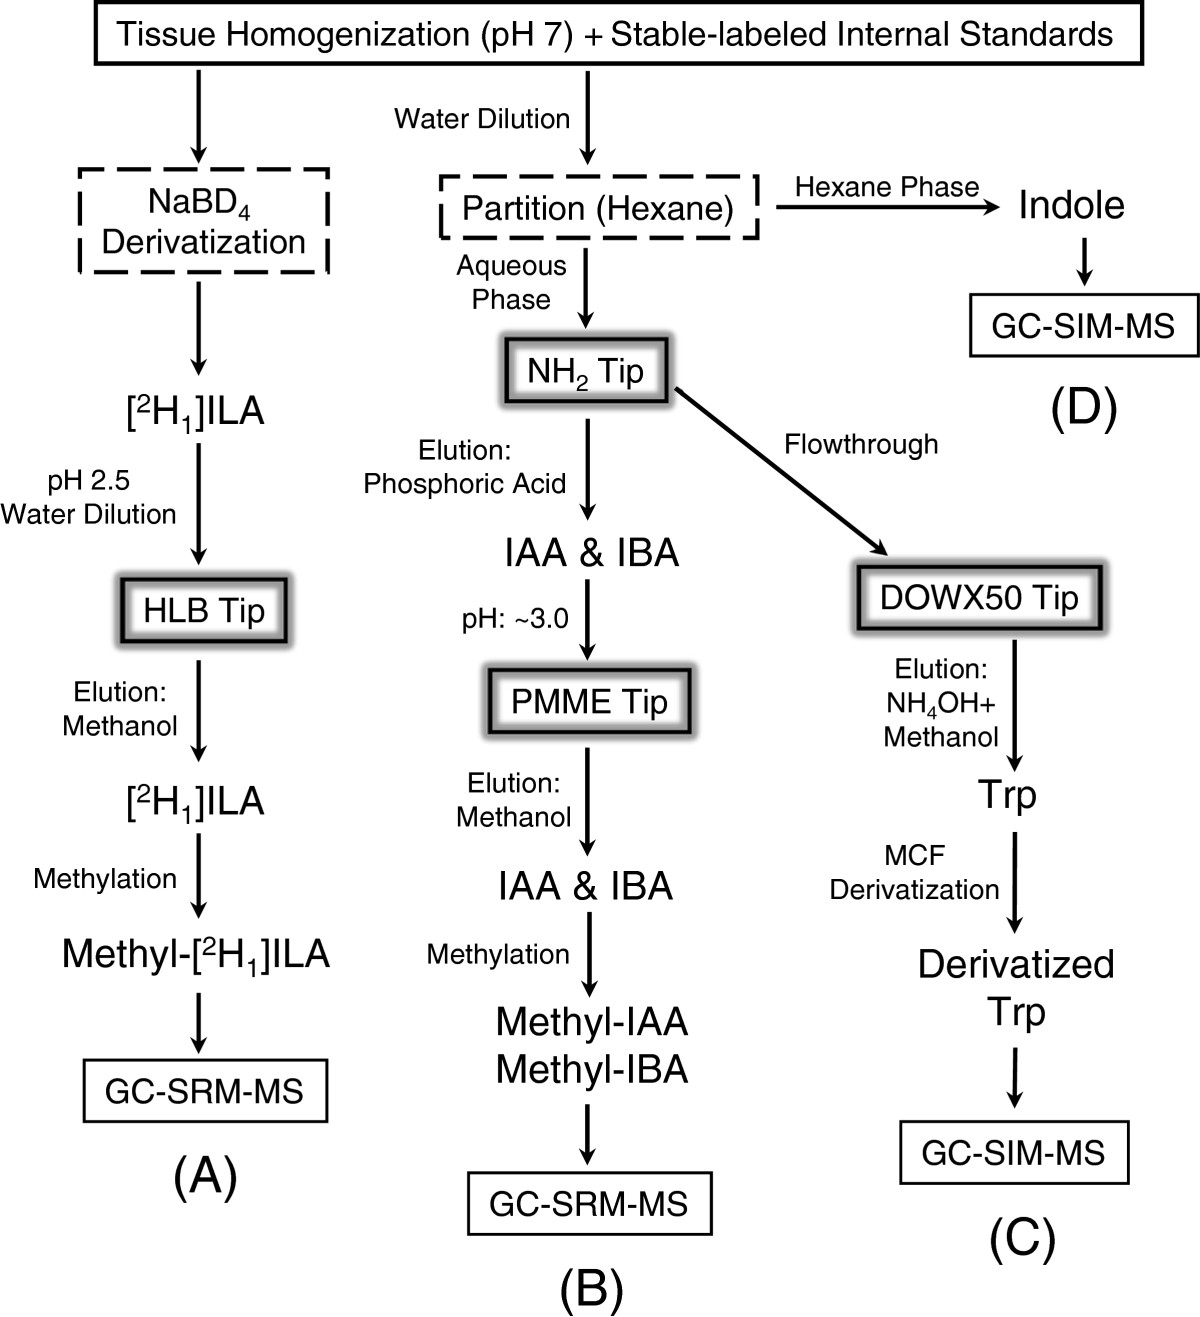 http://static-content.springer.com/image/art%3A10.1186%2F1746-4811-8-31/MediaObjects/13007_2012_Article_196_Fig5_HTML.jpg